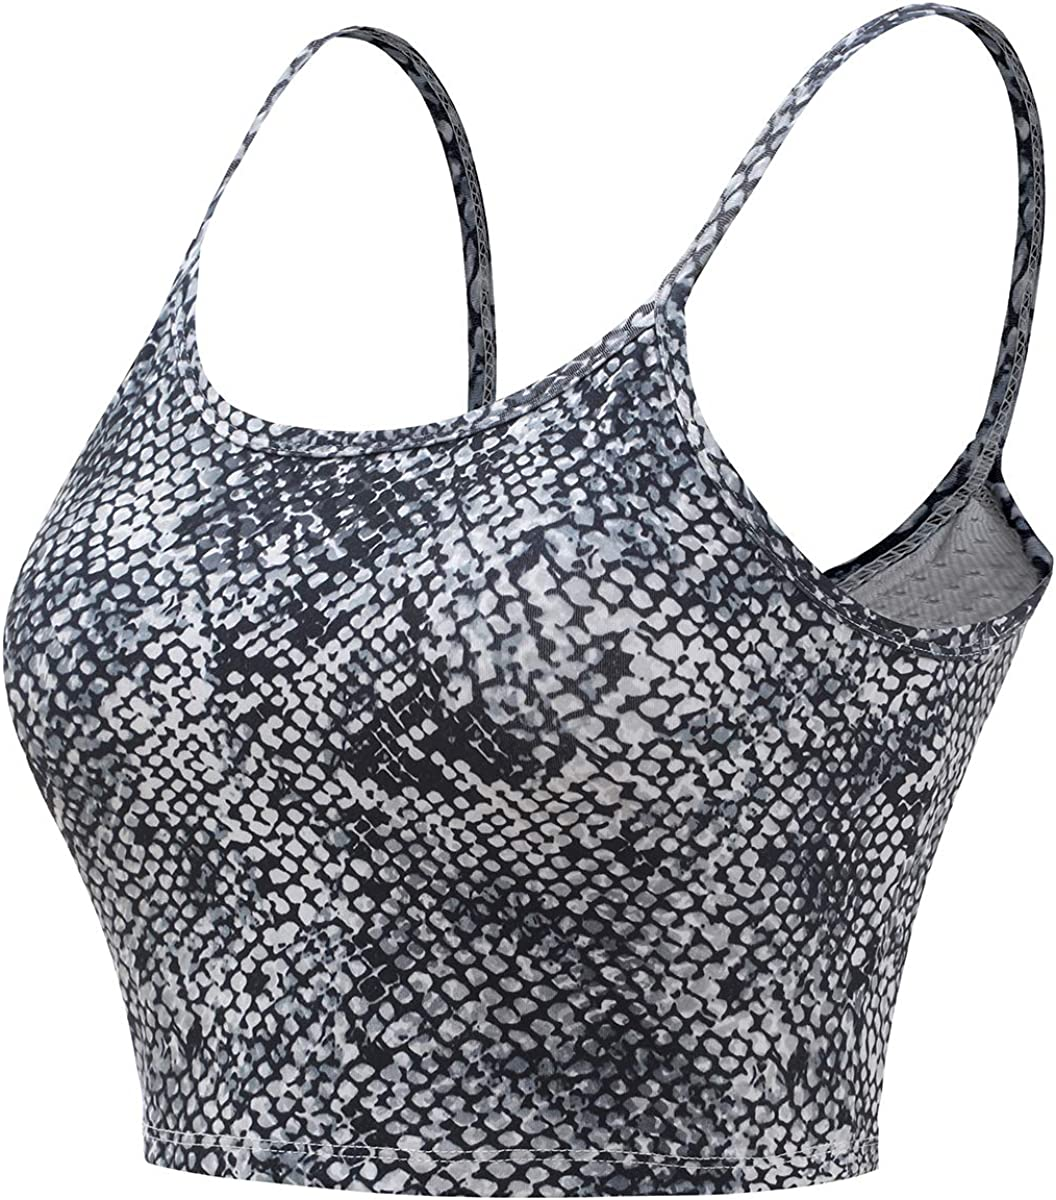 Aonour Crop Tops for Women Longline Sports Bra Padded Camisole for Women with Built in Bra Yoga Workout Running Tank Tops